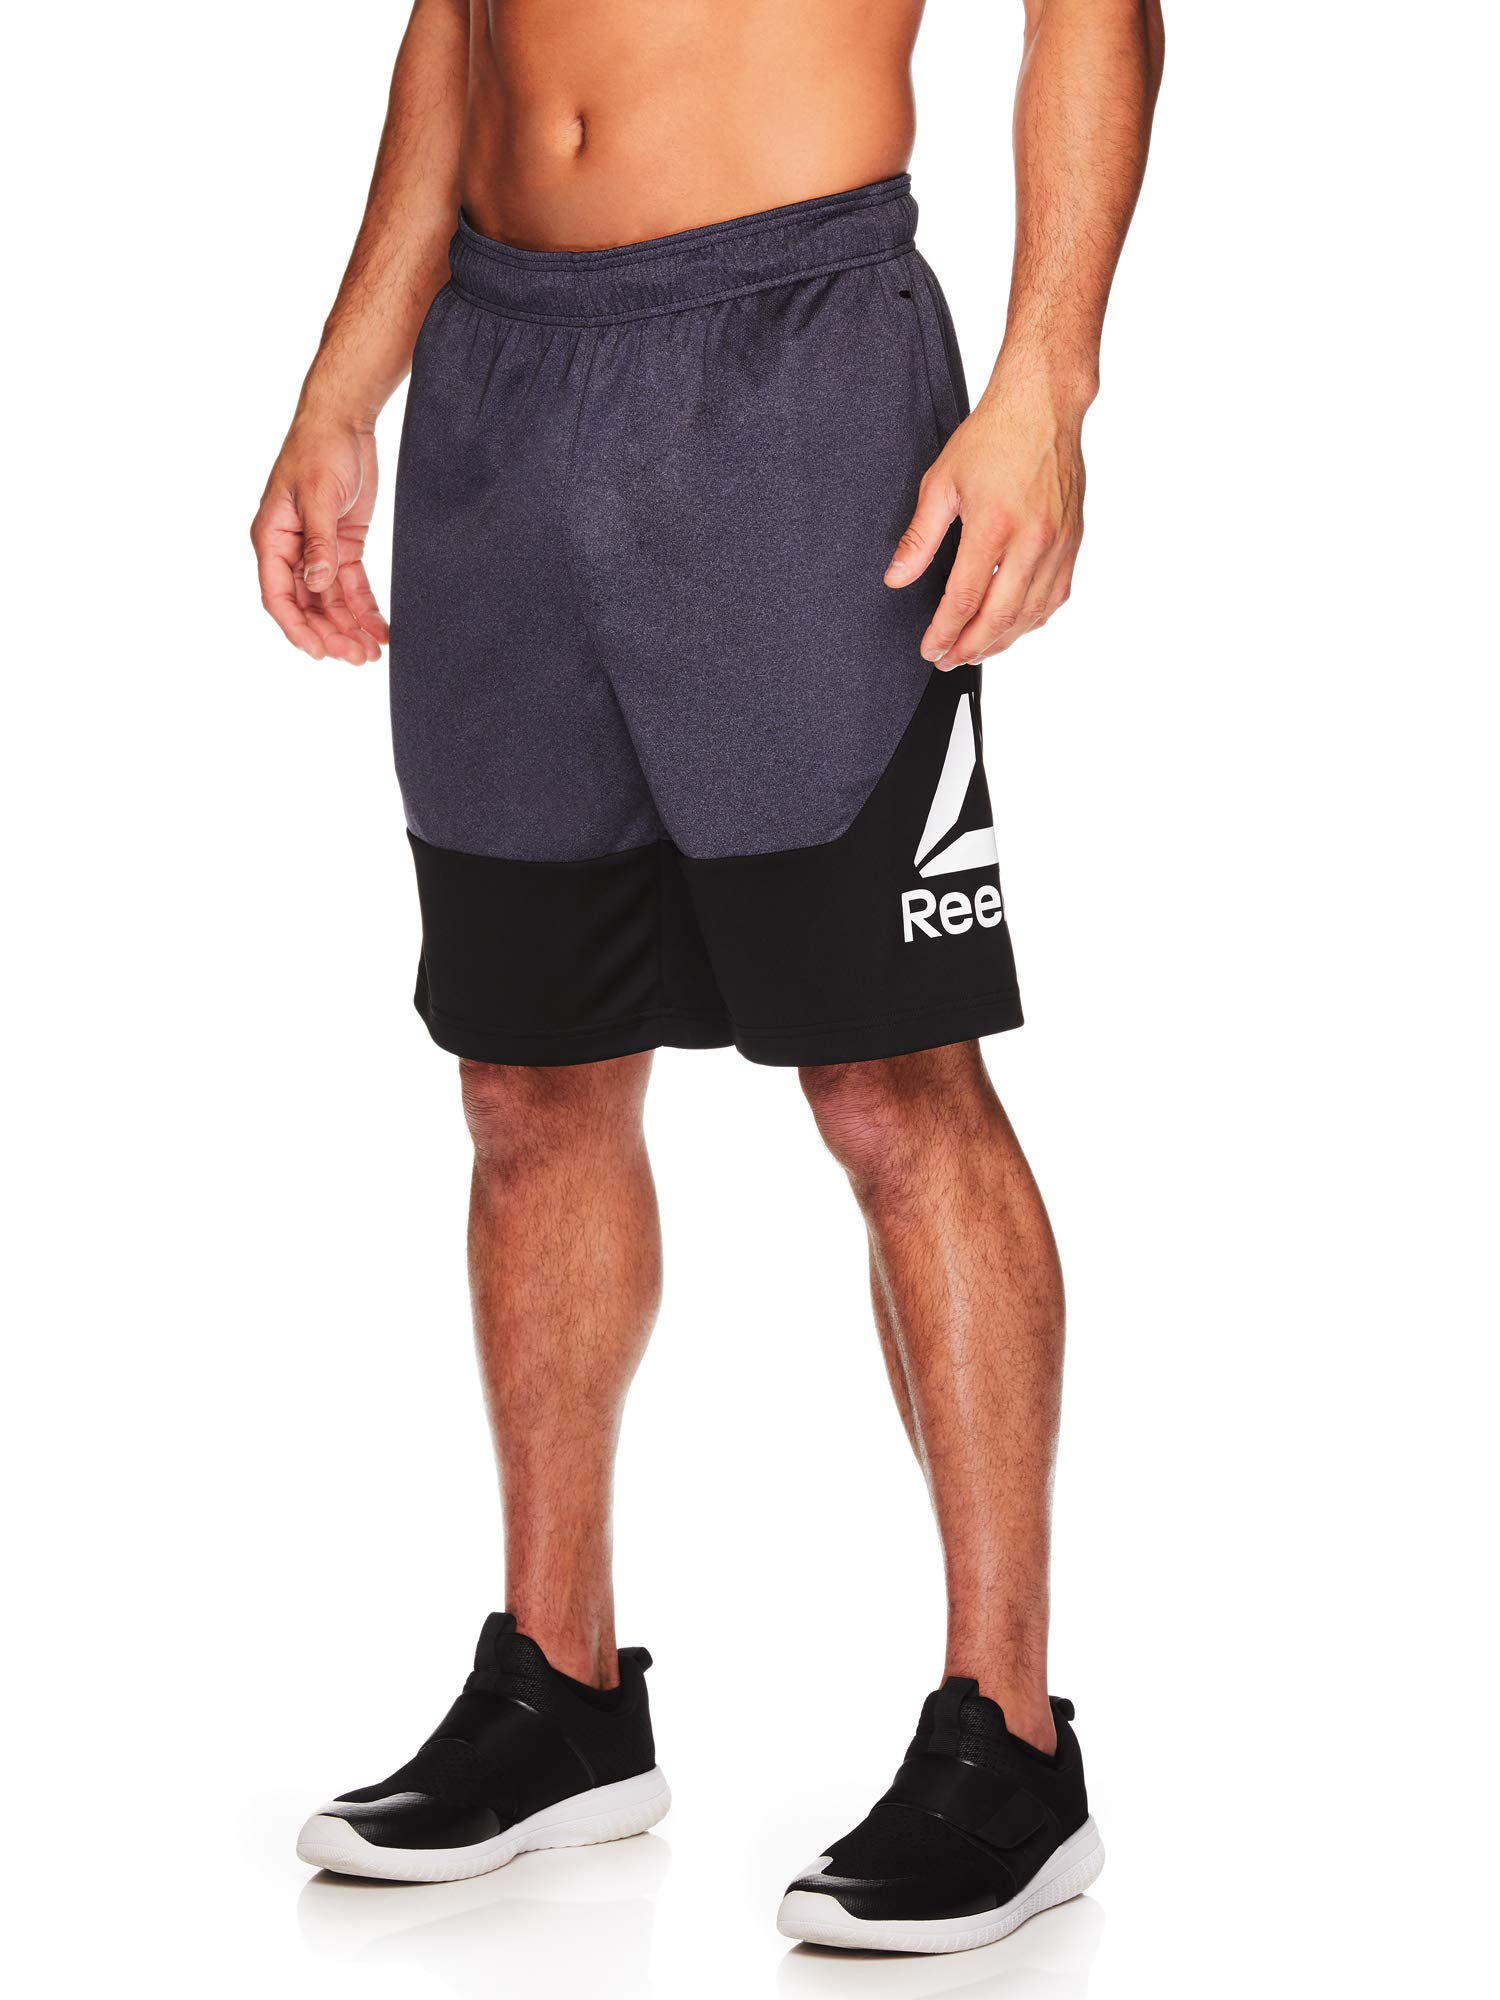 Reebok Men's Drawstring Shorts - Athletic Running & Workout Short w/Pockets - Break Training Ebony Heather, Small